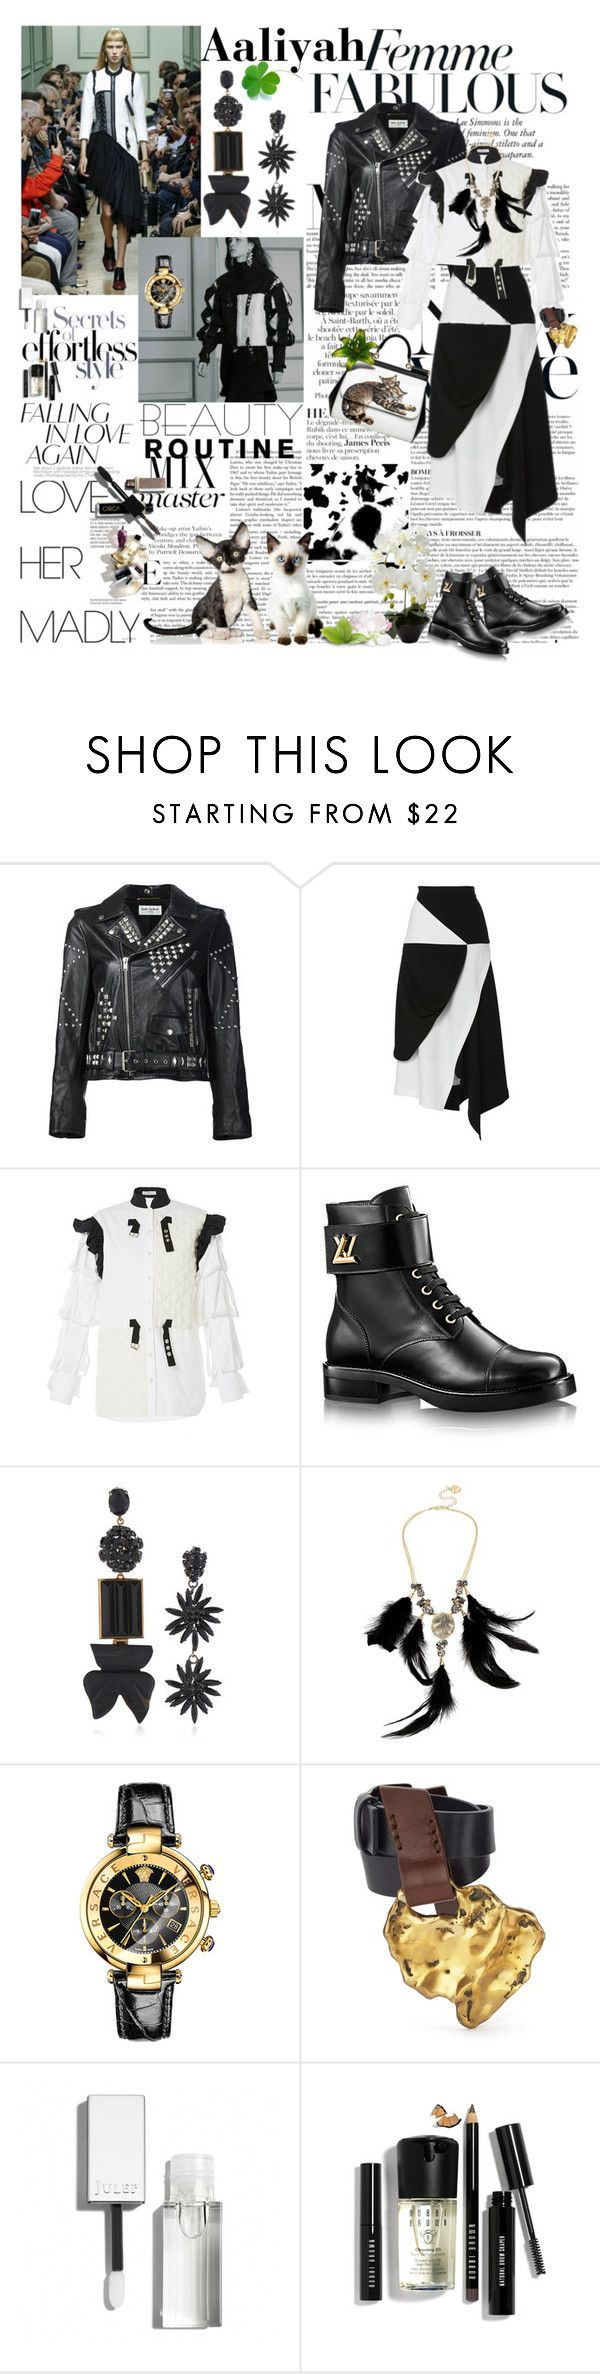 """Aaliyah 2016-547"" by aaliyah ❤ liked on Polyvore featuring Anja, Yves Saint Laurent, Marni, Betsey Johnson, Libertine, Versace, Bobbi Brown Cosmetics and polyvoreeditorial"